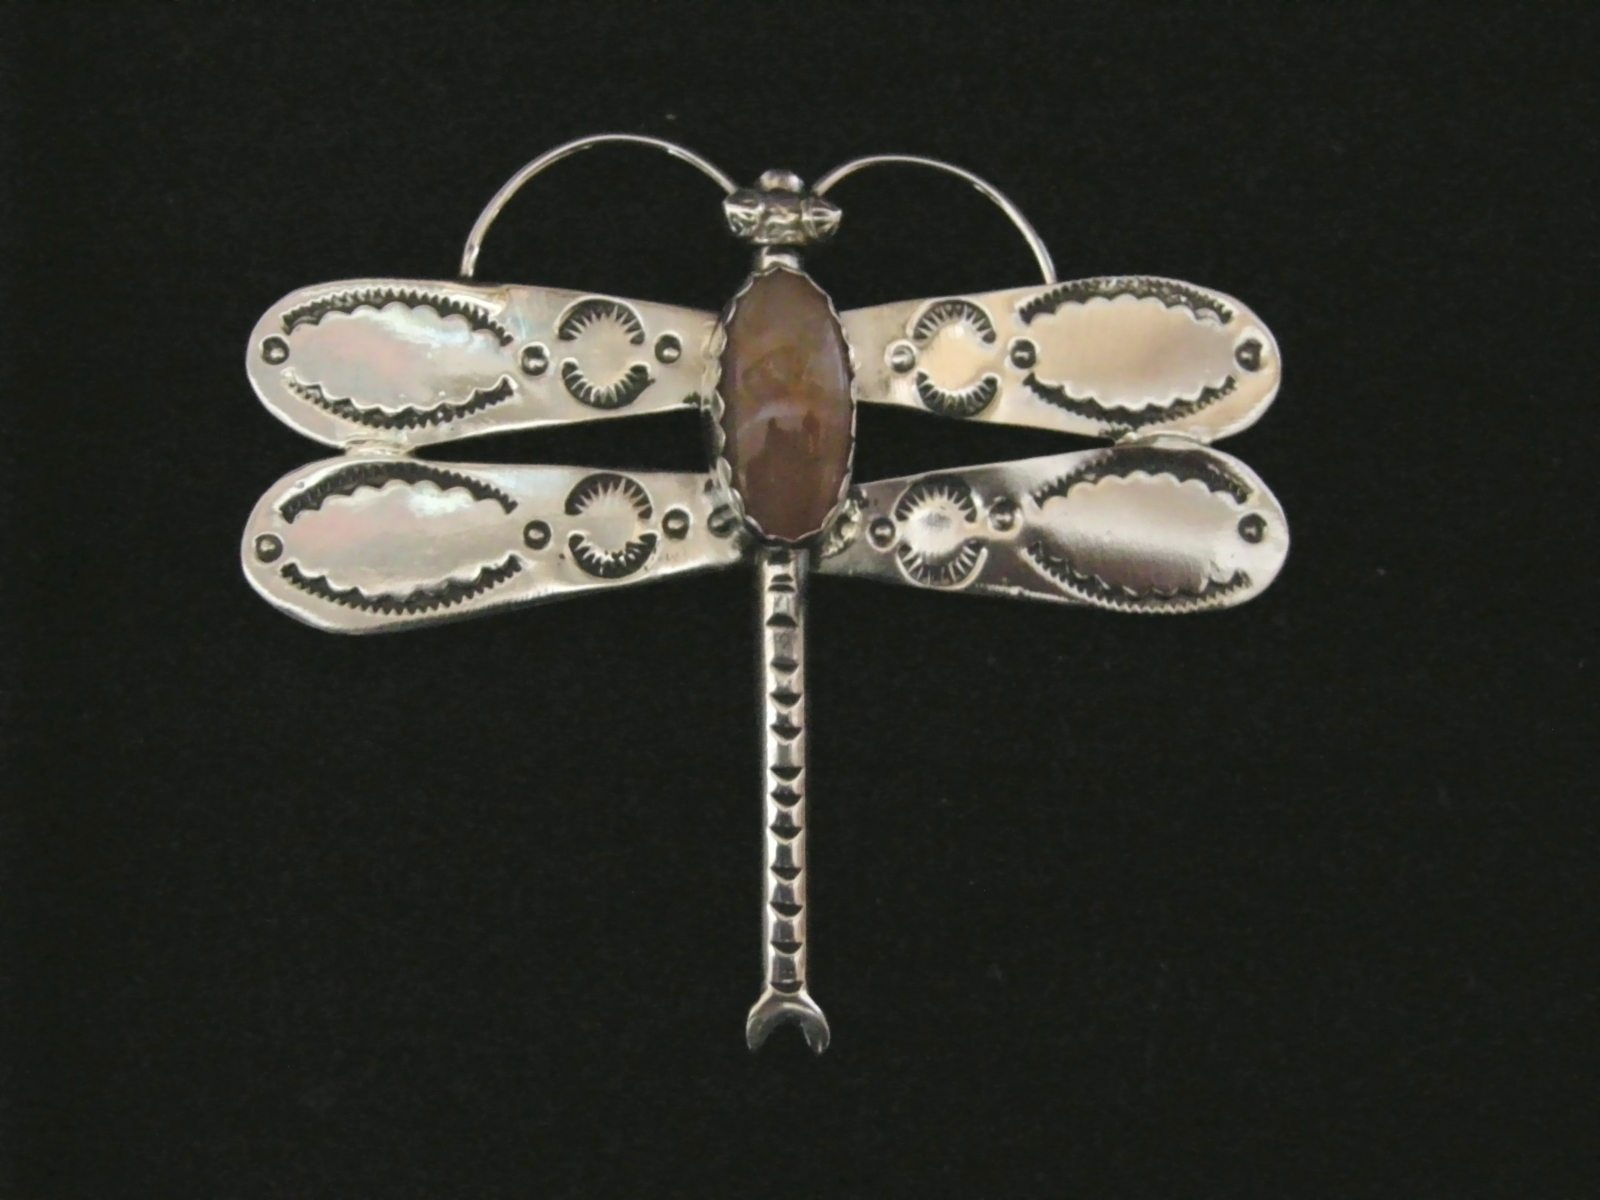 Dragonfly melding symbol and spirit ndn silverwings of the dragonfly fire agate pin 2 b biocorpaavc